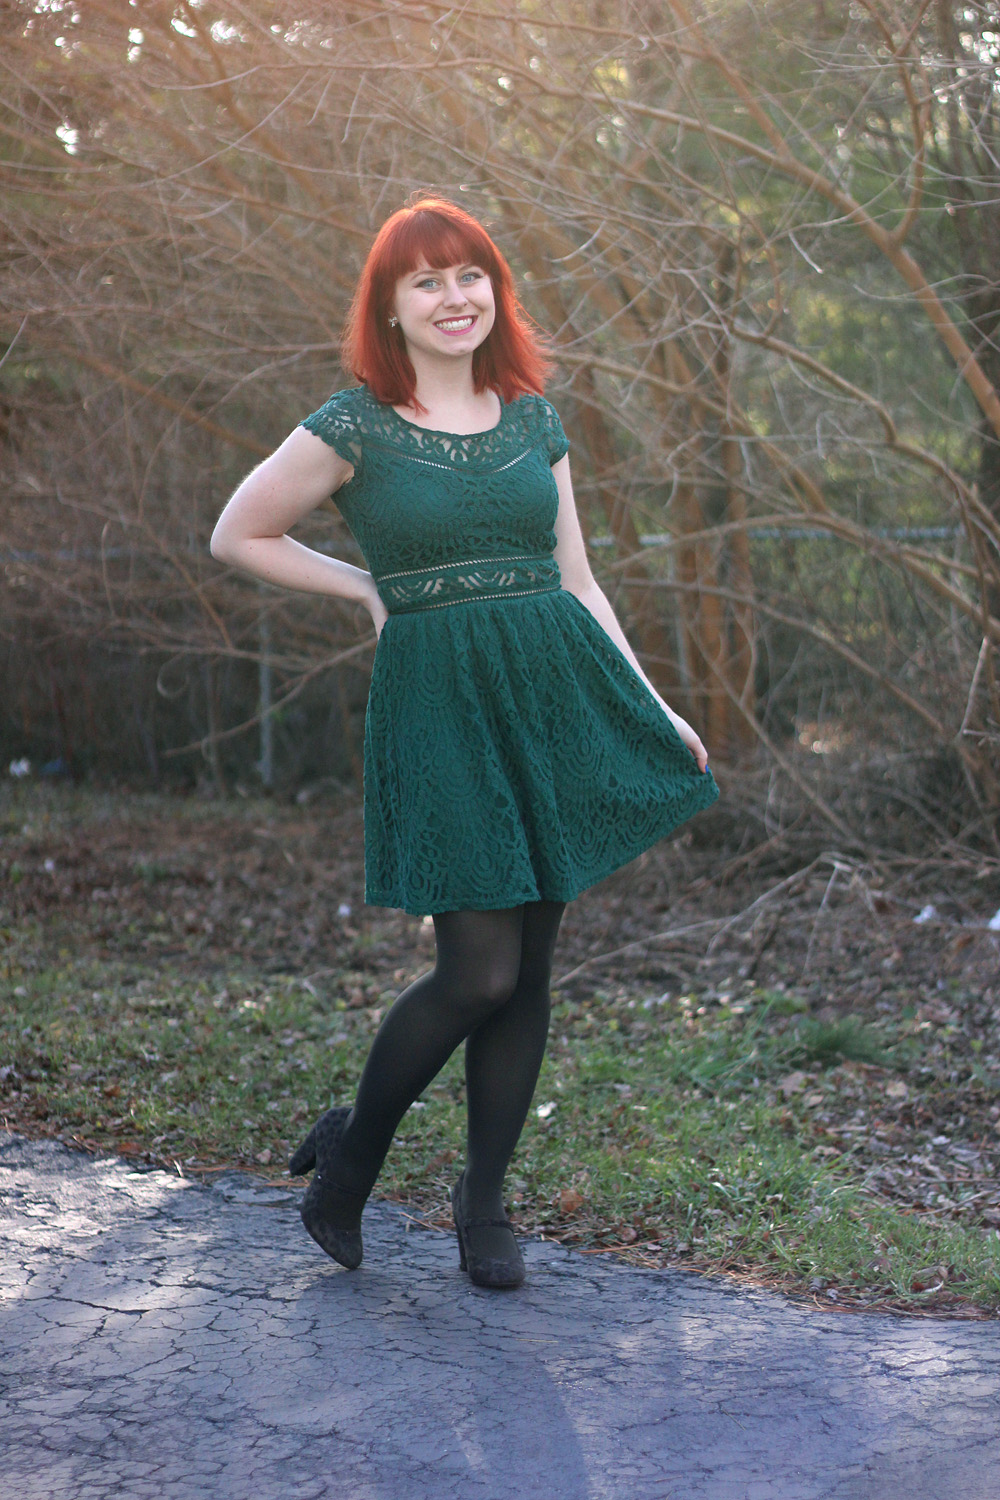 Holiday Outfit: Dark Green Lace Fit and Flare Dress, Gray Tights, and Gray Mary Jane Heels